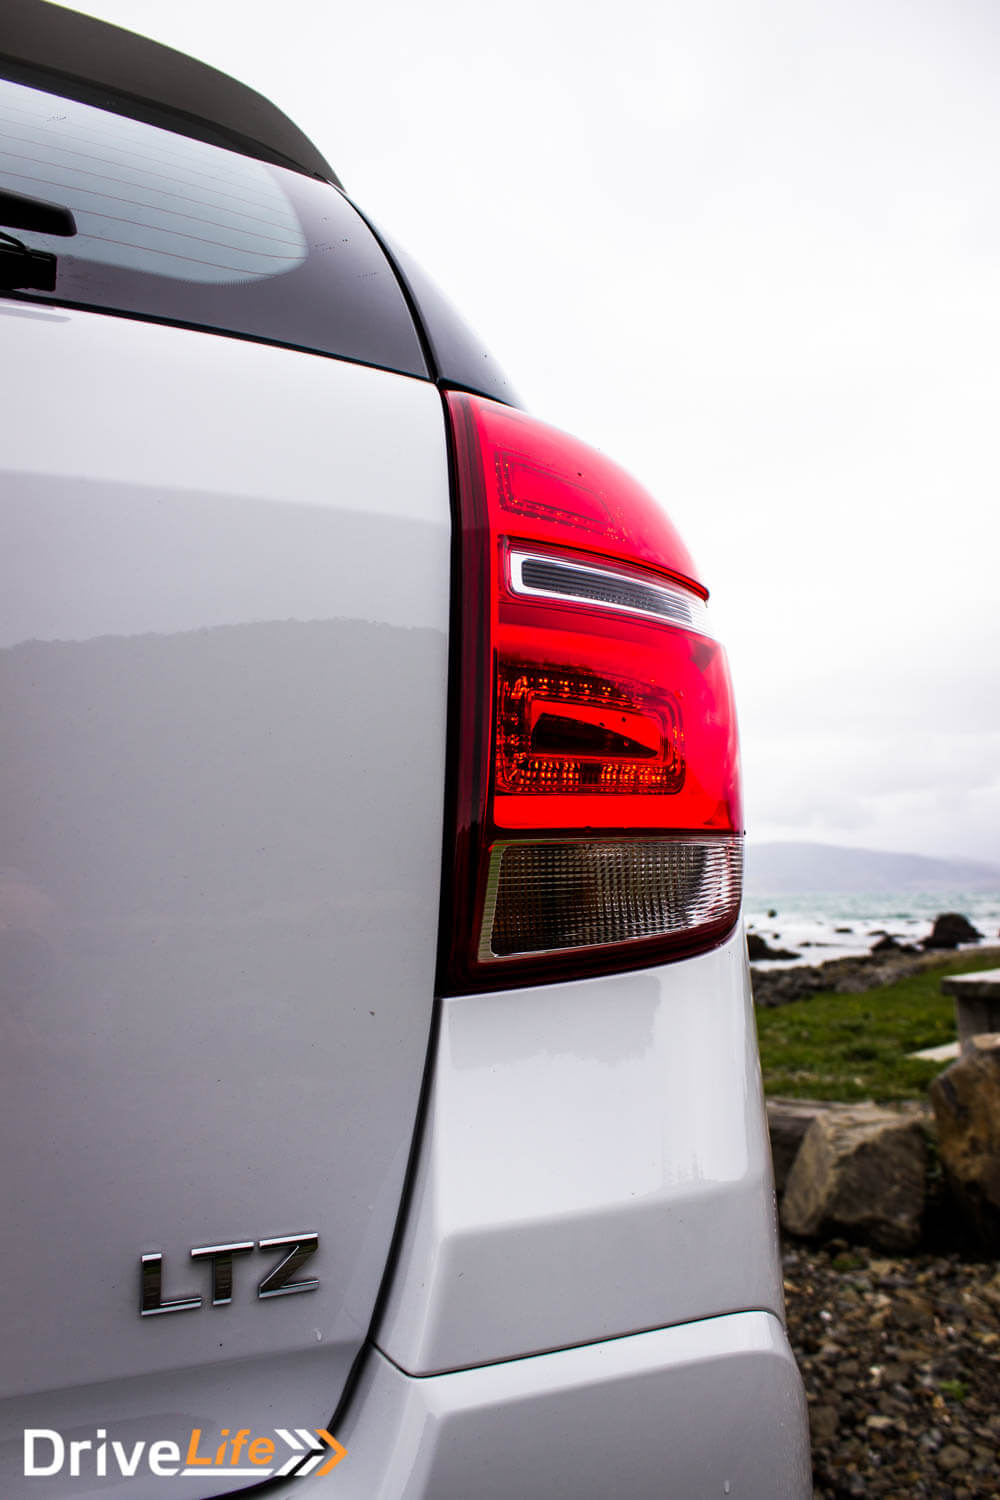 2016 Captiva Ltz User Manual